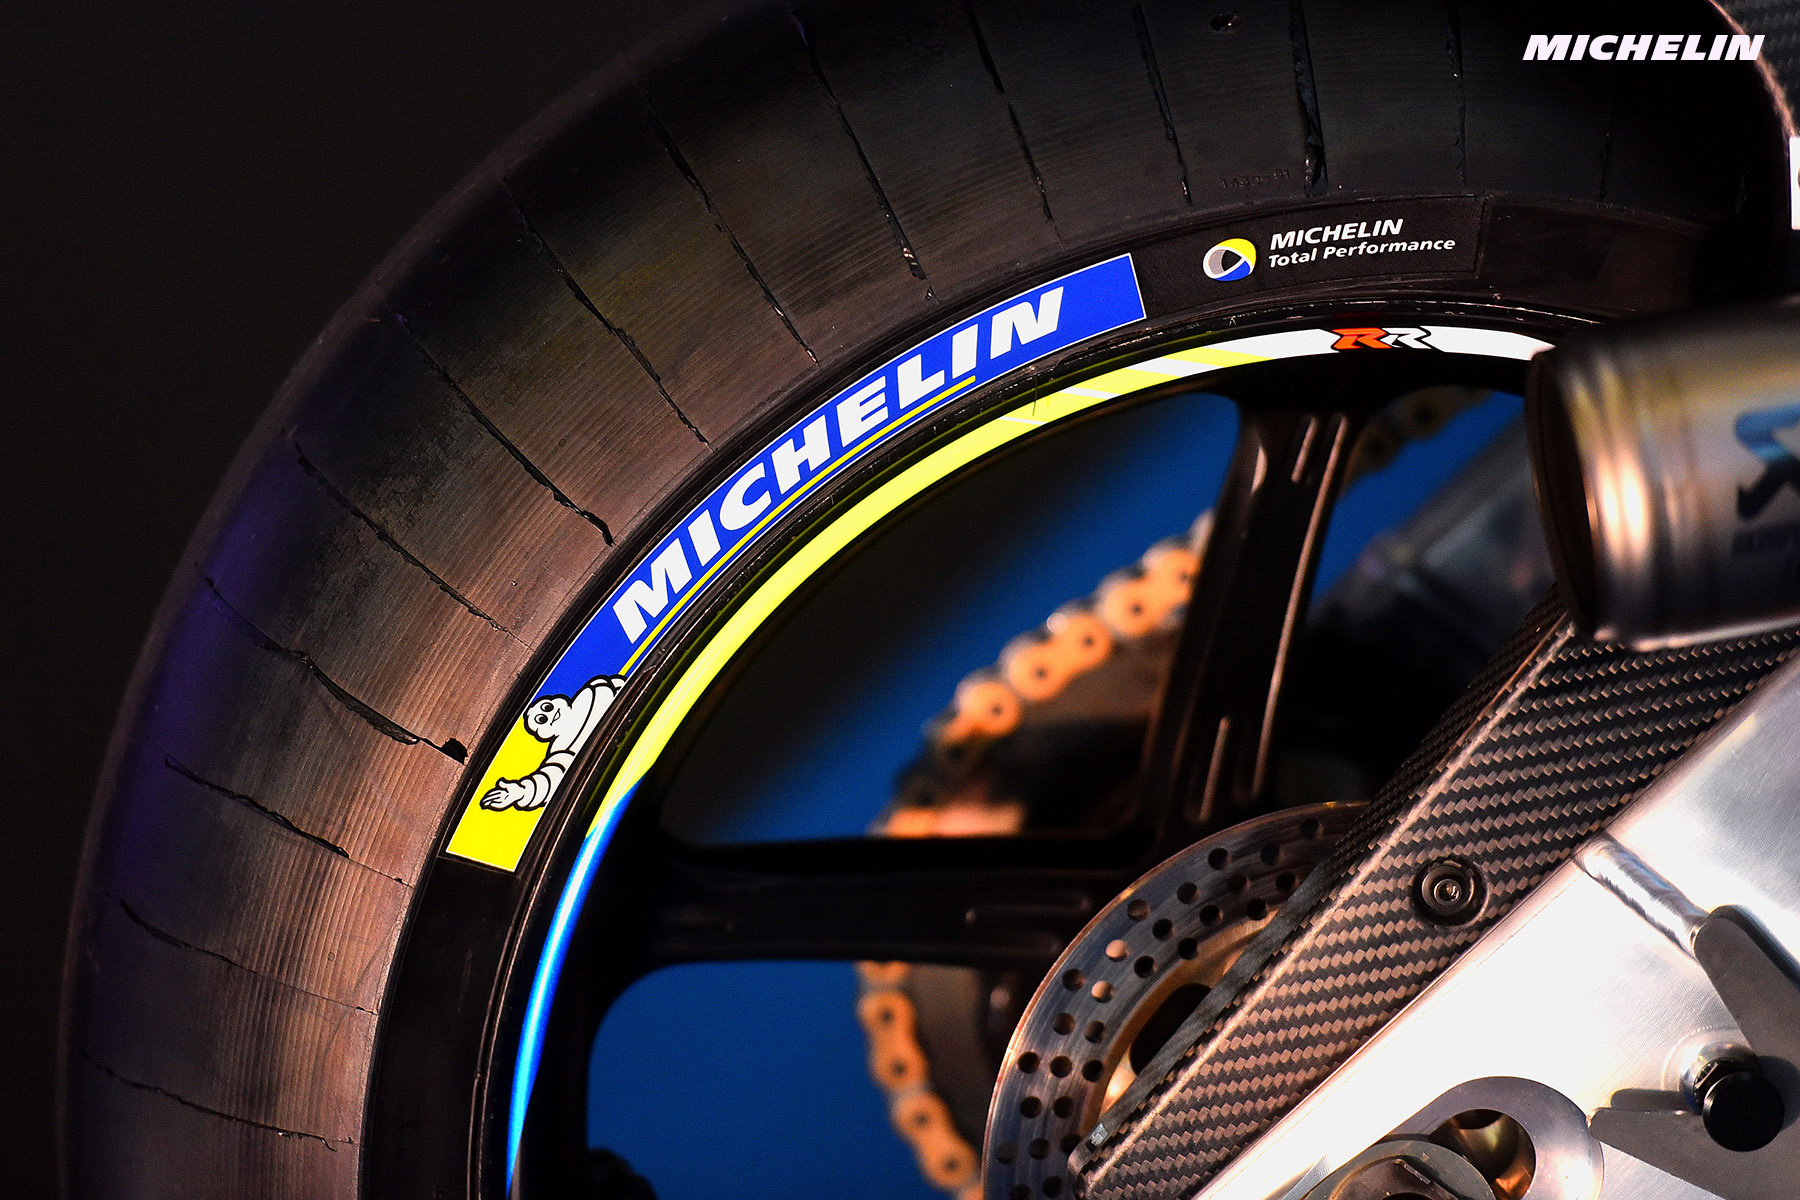 MotoGP Off Season Show visits Michelin